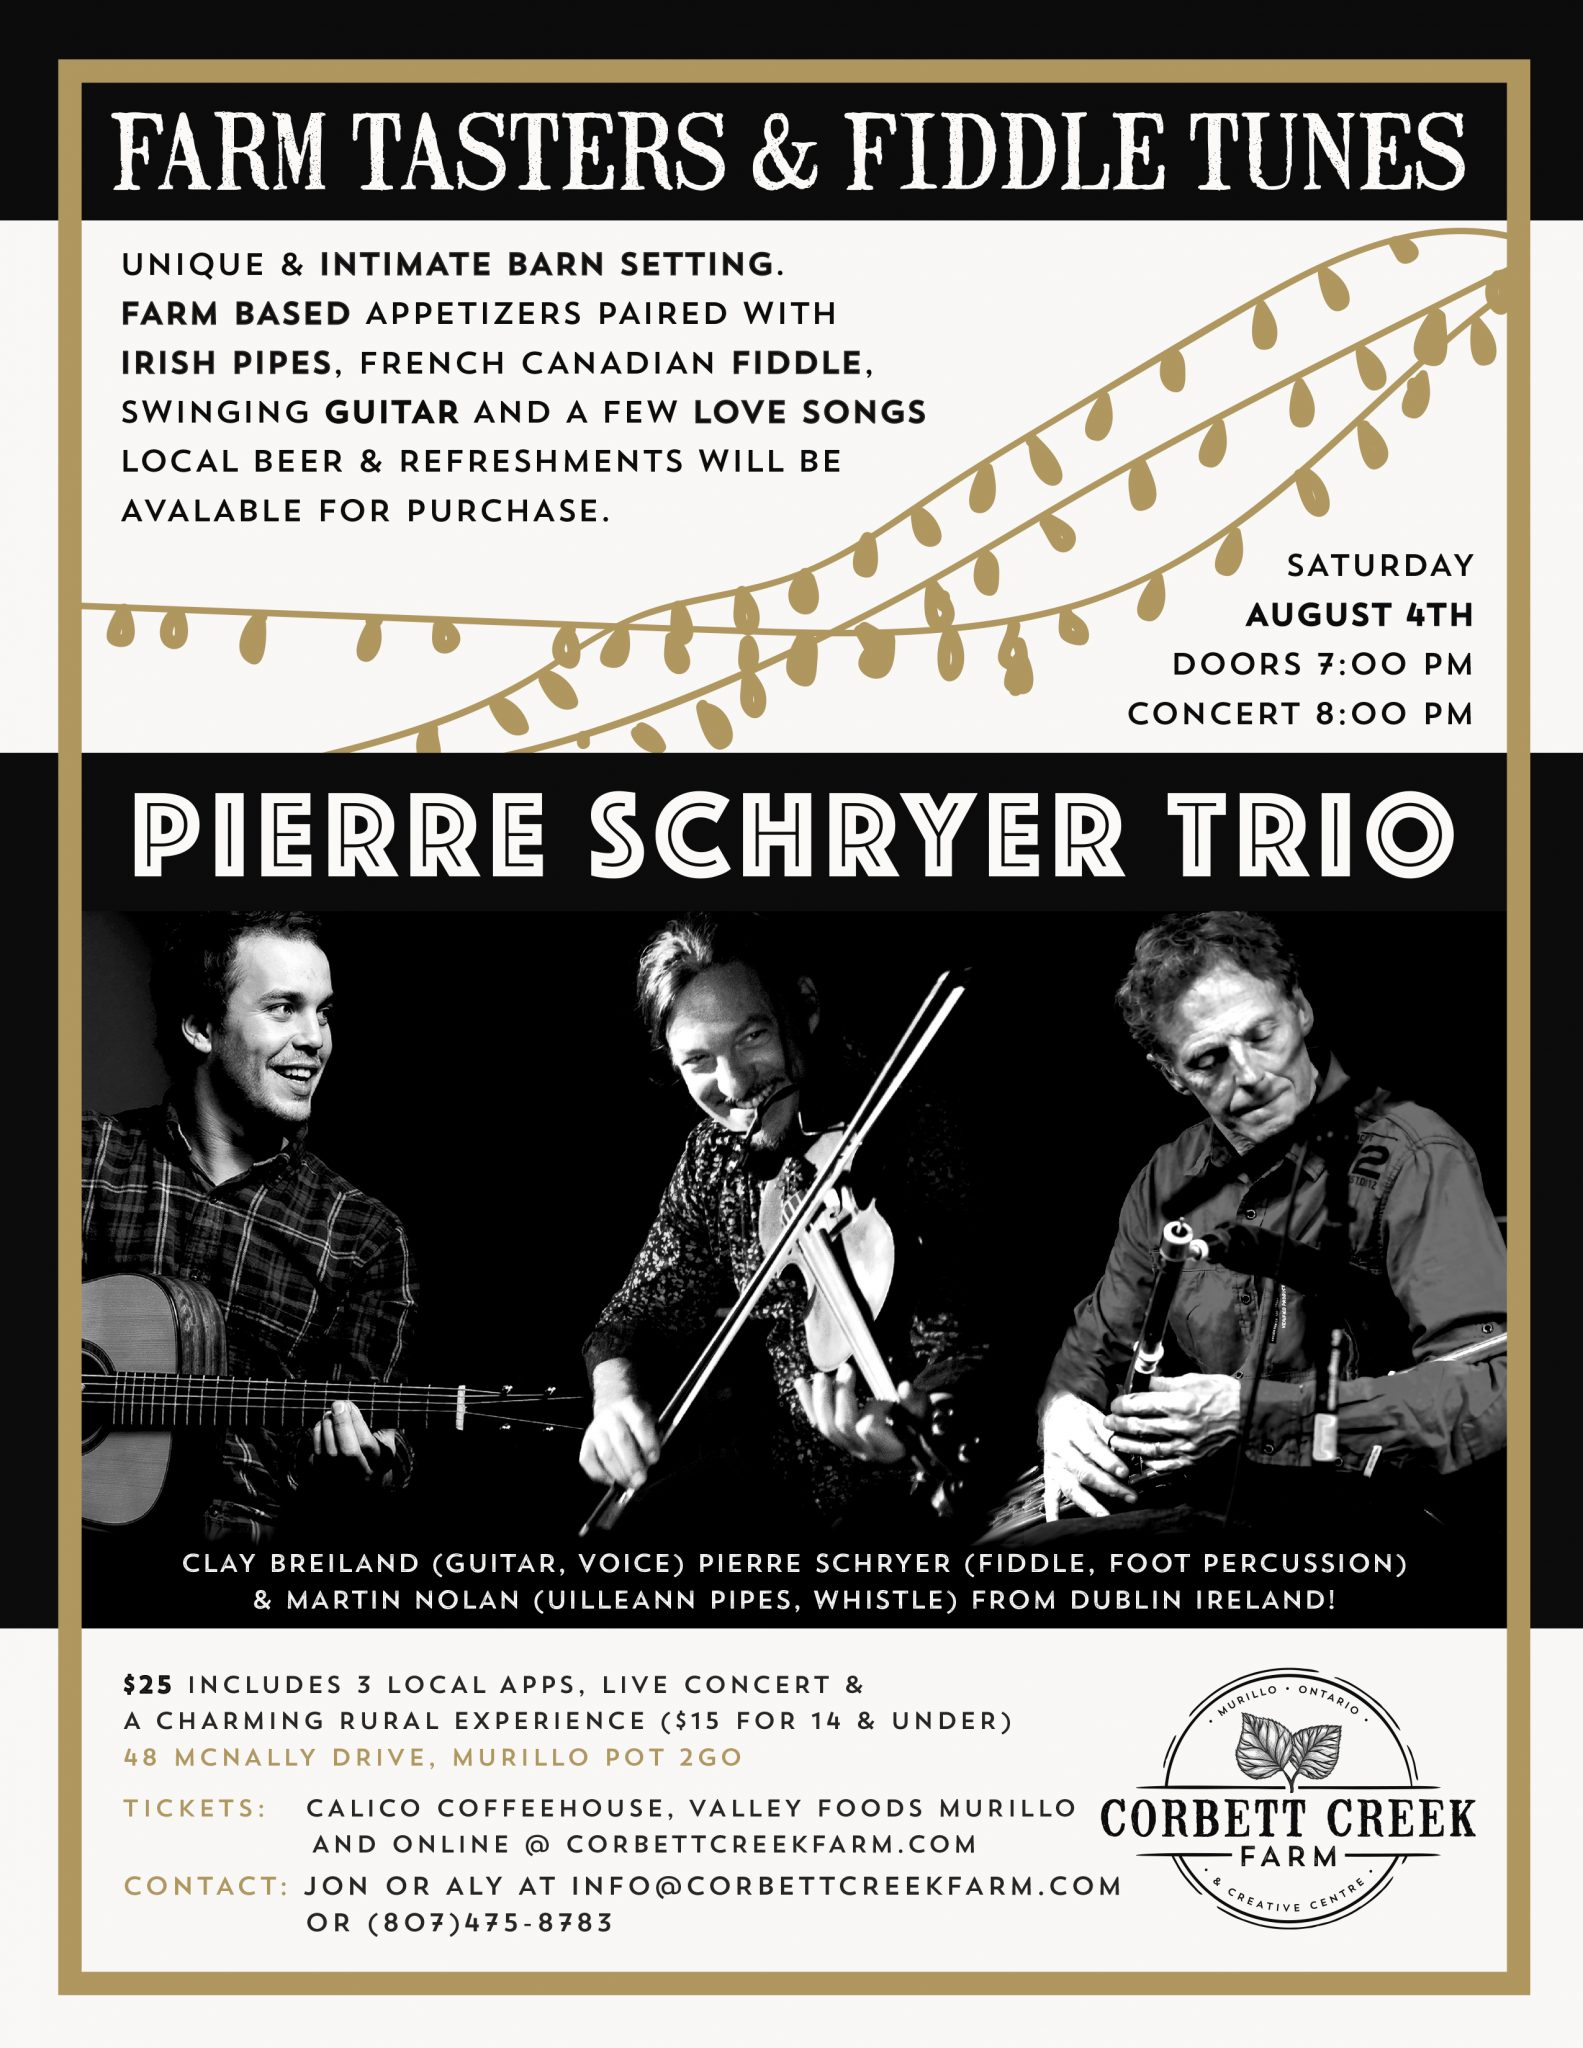 Farm Tasters & Fiddle Tunes with PIERRE SCHRYER TRIO | The